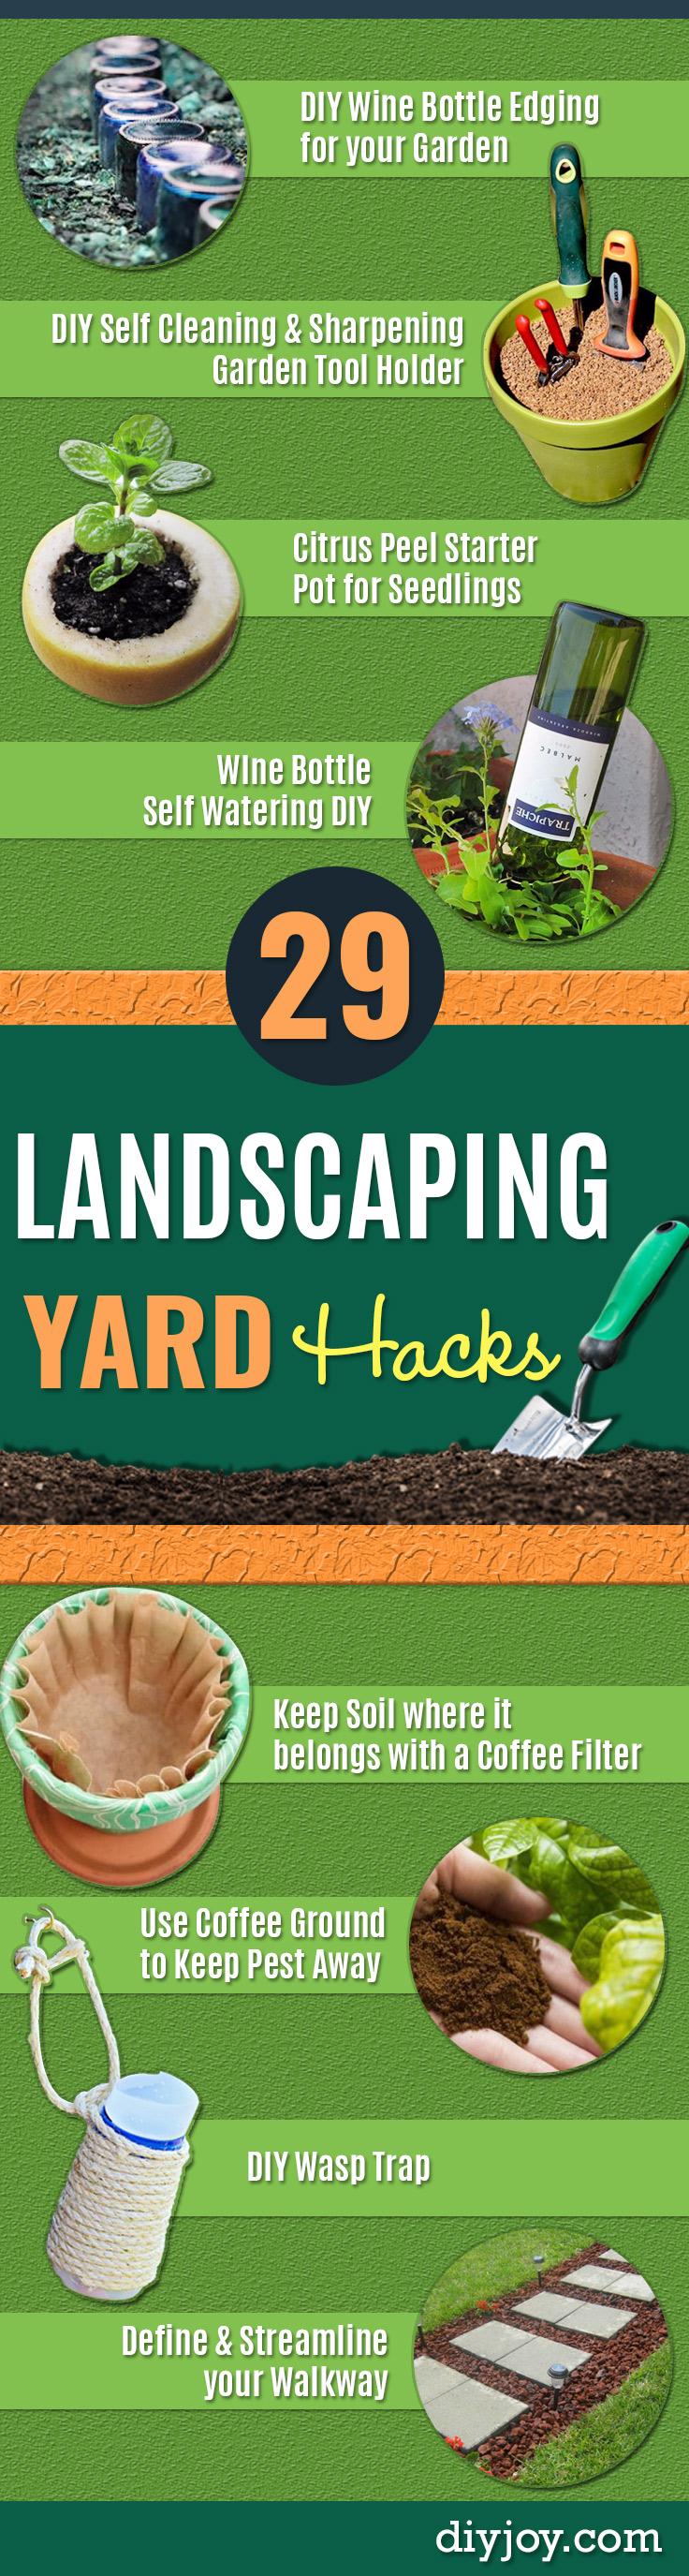 DIY Landscaping Hacks - Easy Ways to Make Your Yard and Home Look Awesome in Fall, Winter, Spring and Fall. Backyard Projects for Beginning Gardeners and Lawns - Tutorials and Step by Step Instructions http://diyjoy.com/landscaping-hacks